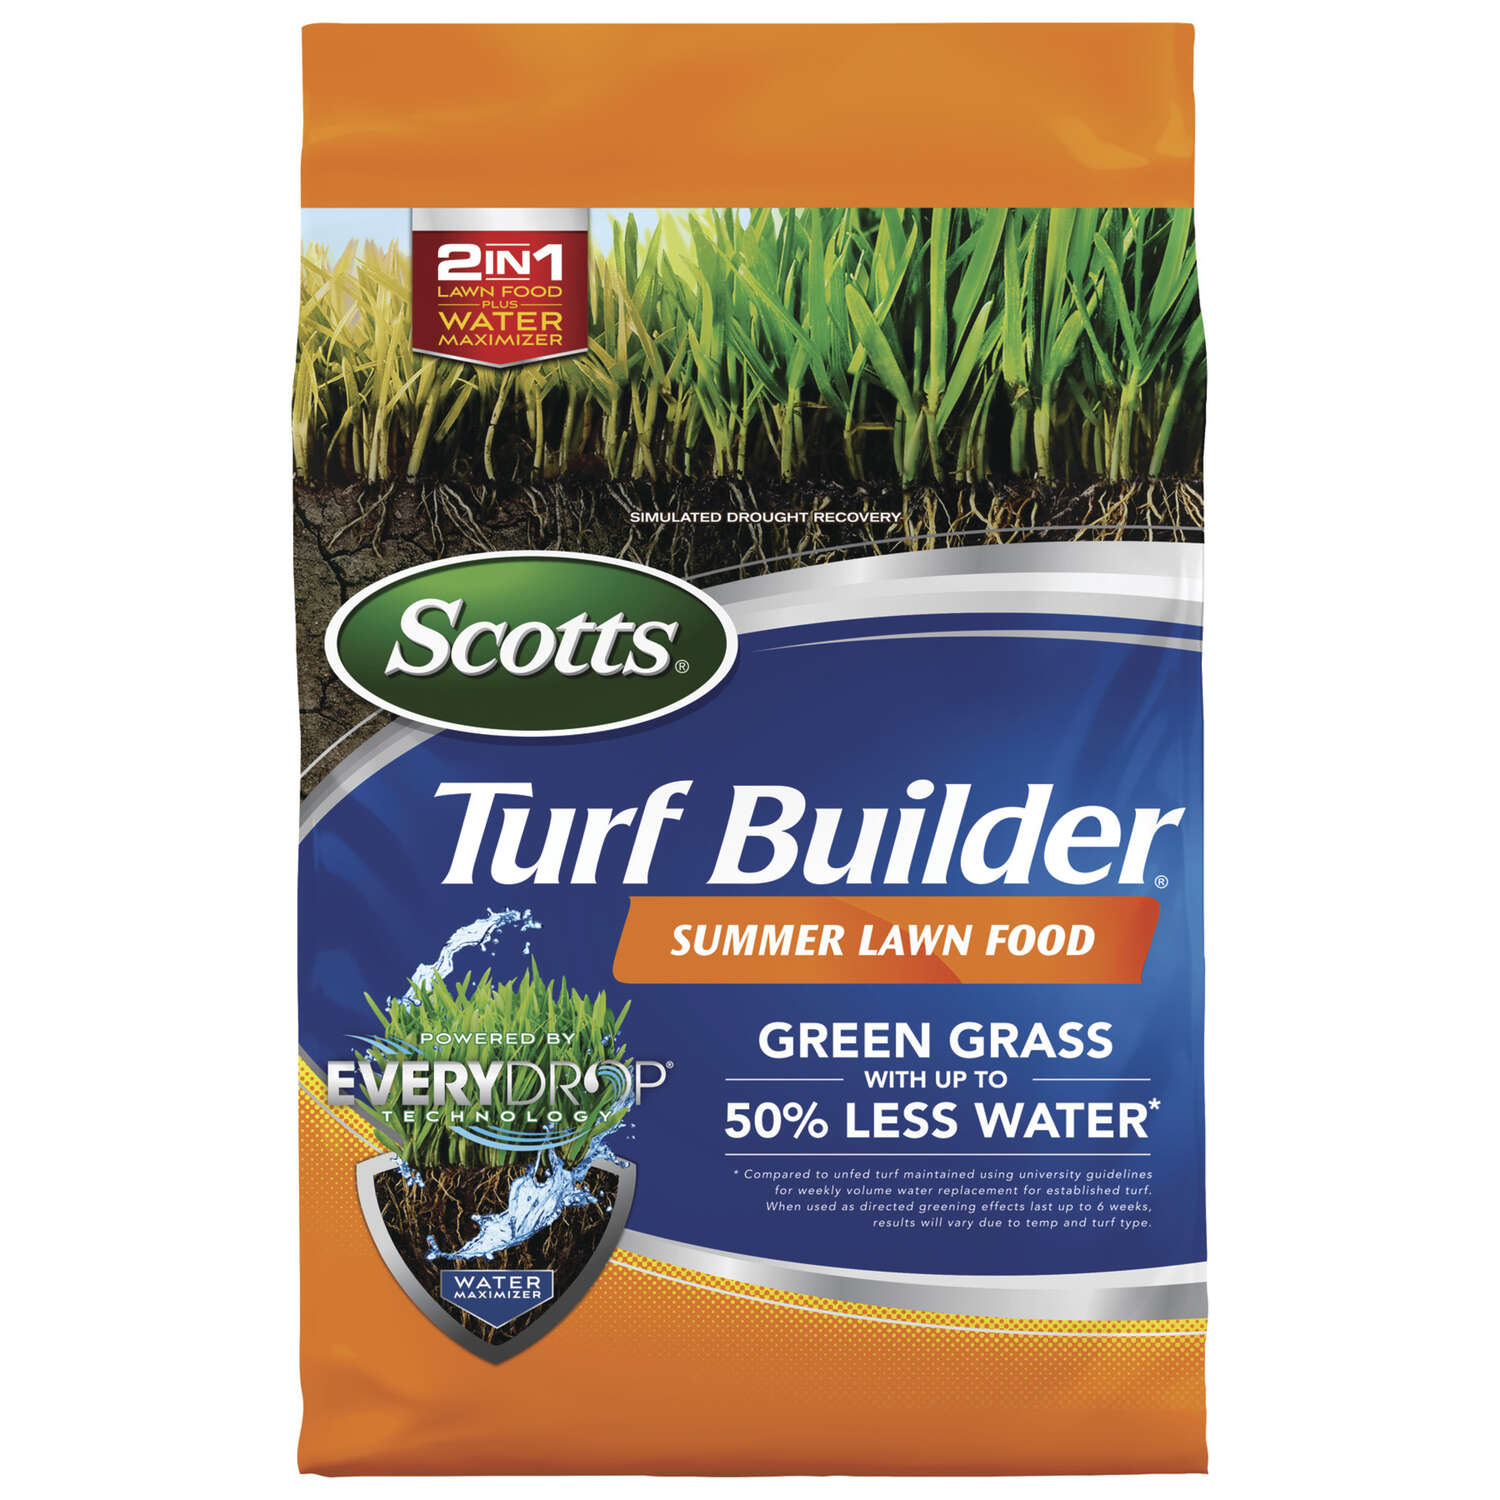 Scotts  Turf Builder  34-0-0  Lawn Food  For All Grass Types 9.5 lb. 4000 sq. ft.